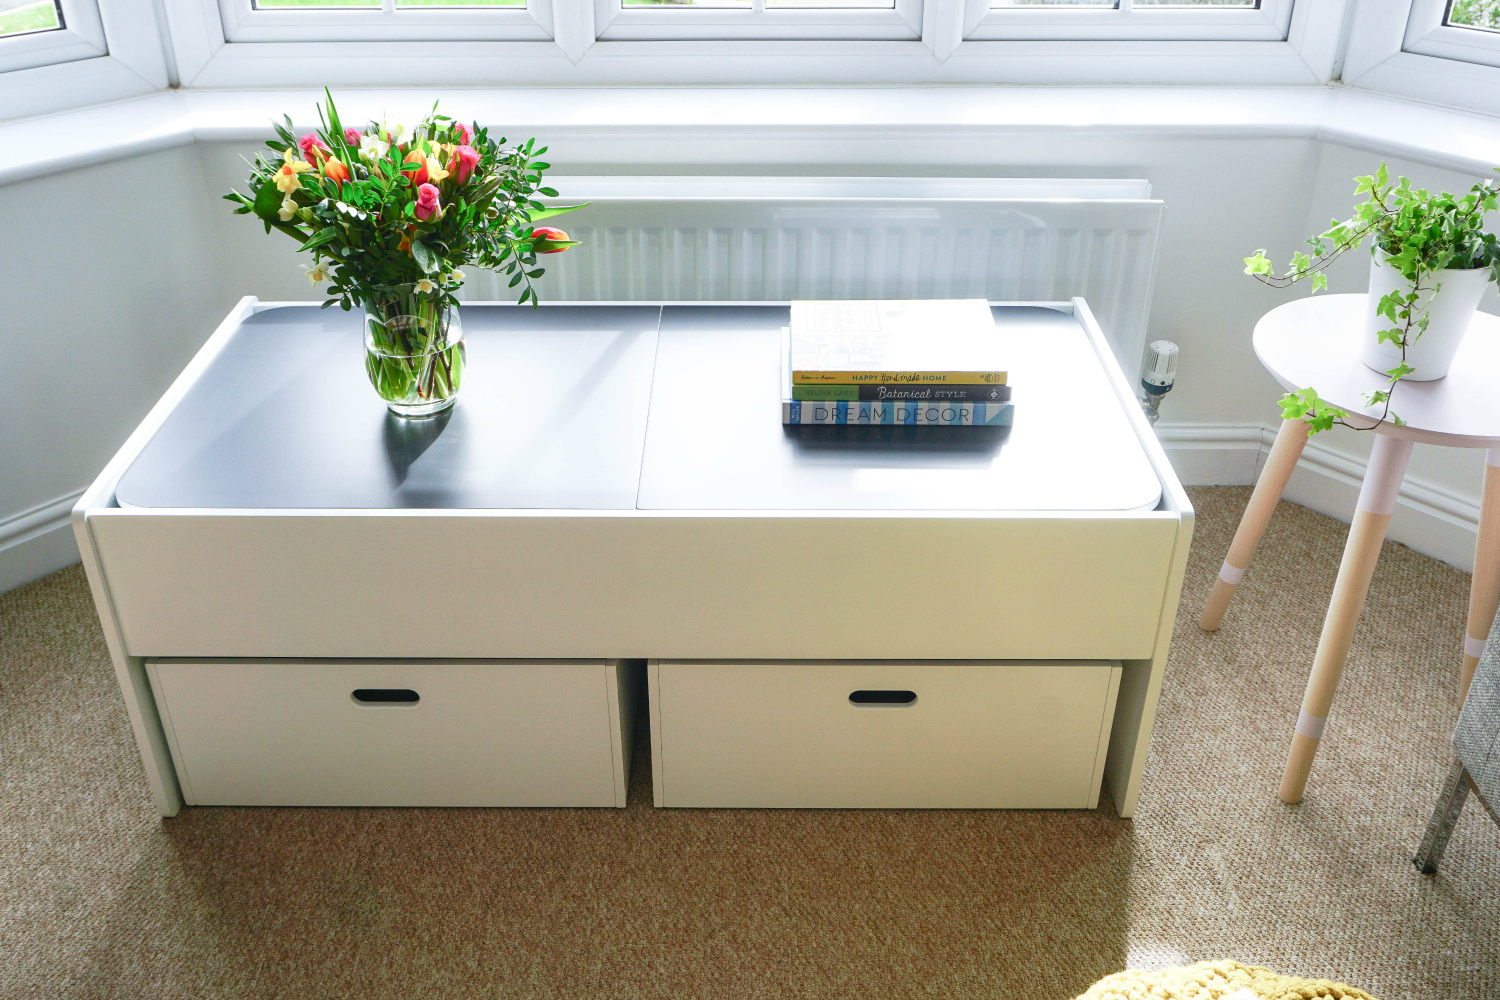 Great Little Trading Co. Eden Play Table - the perfect play table for a family living space